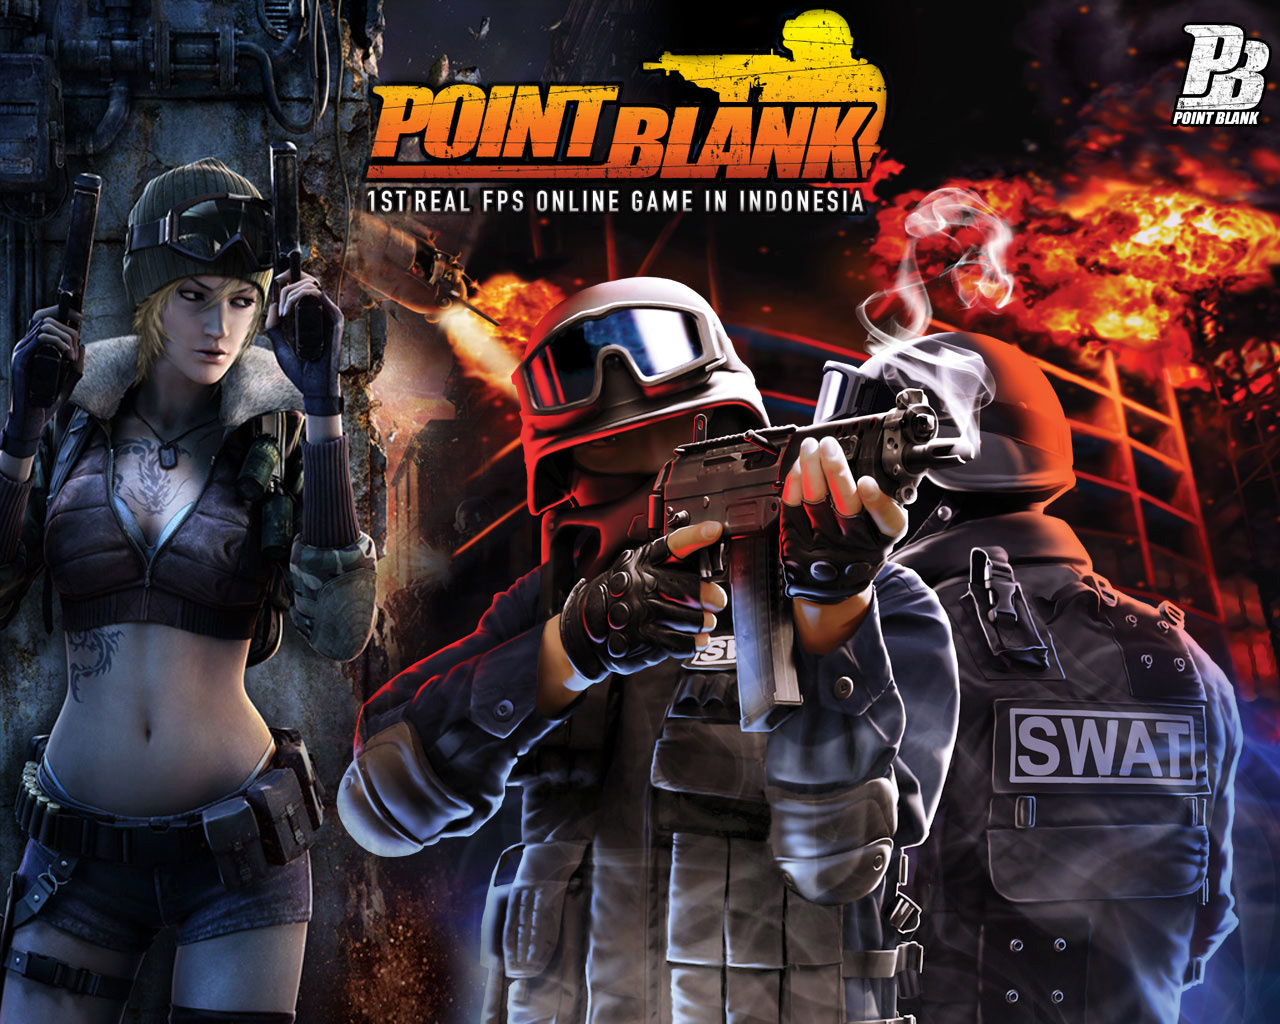 point blank part 2 link download point blank part 3 link download